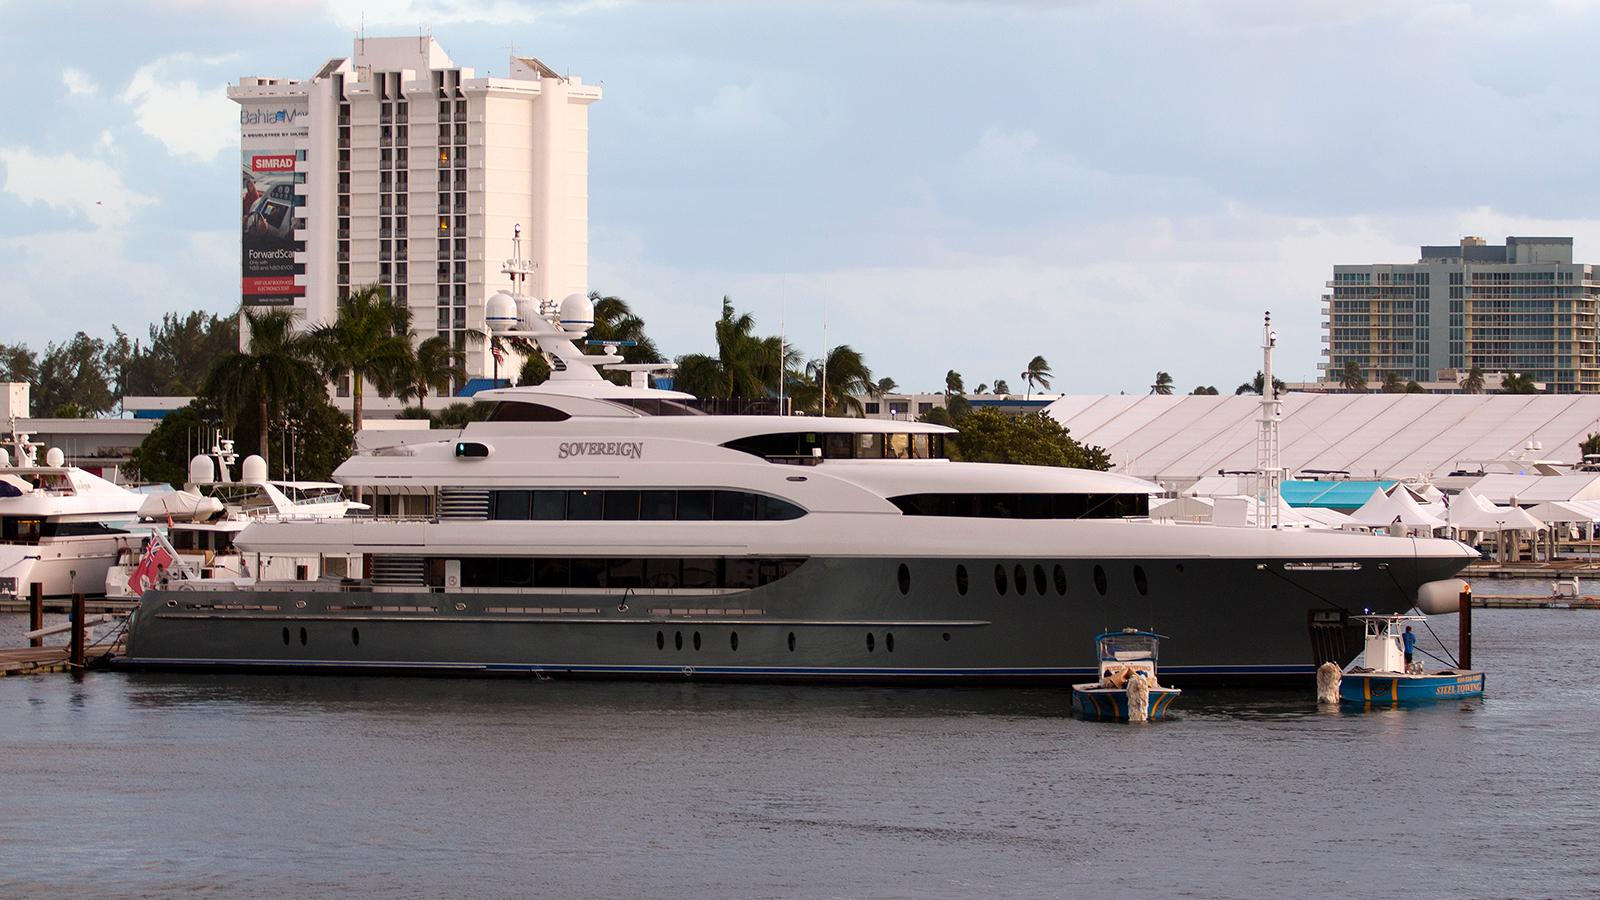 sovereign-motor-yacht-newcastle-marine-2011-55m-profile-moored